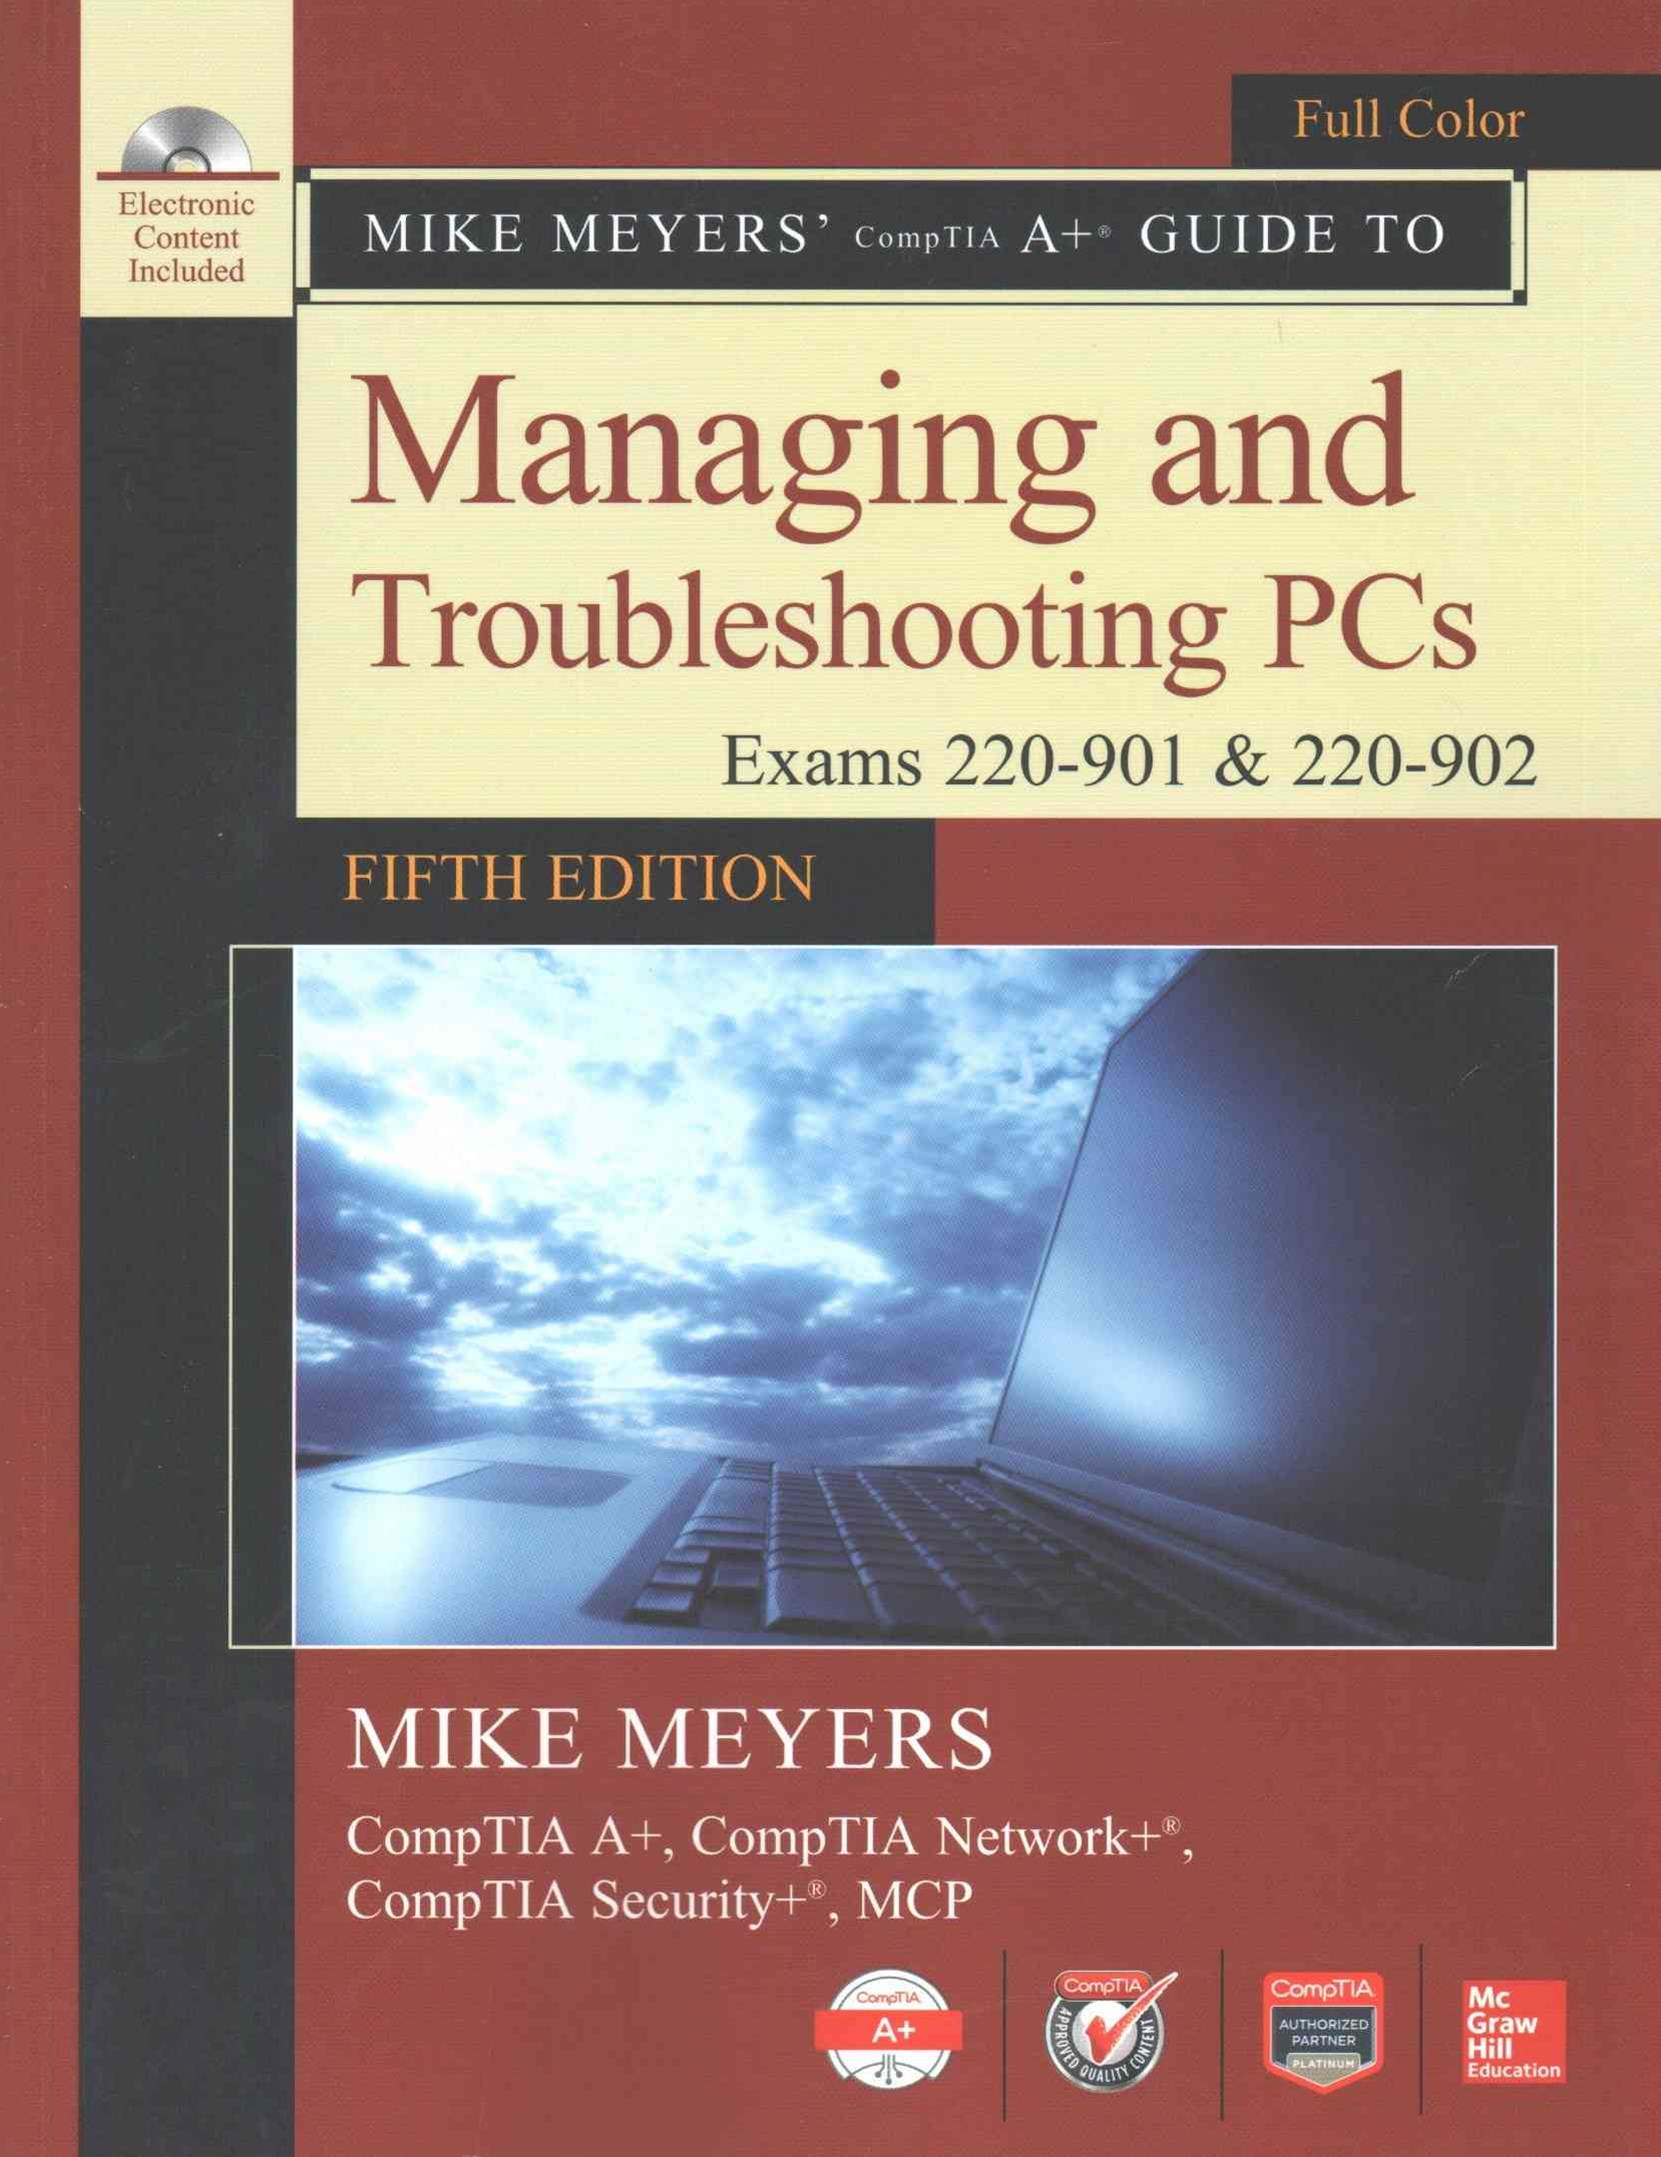 Mike Meyers' CompTIA a+ Guide to Managing and Troubleshooting PCs, Fifth Edition (Exams 220-901 And